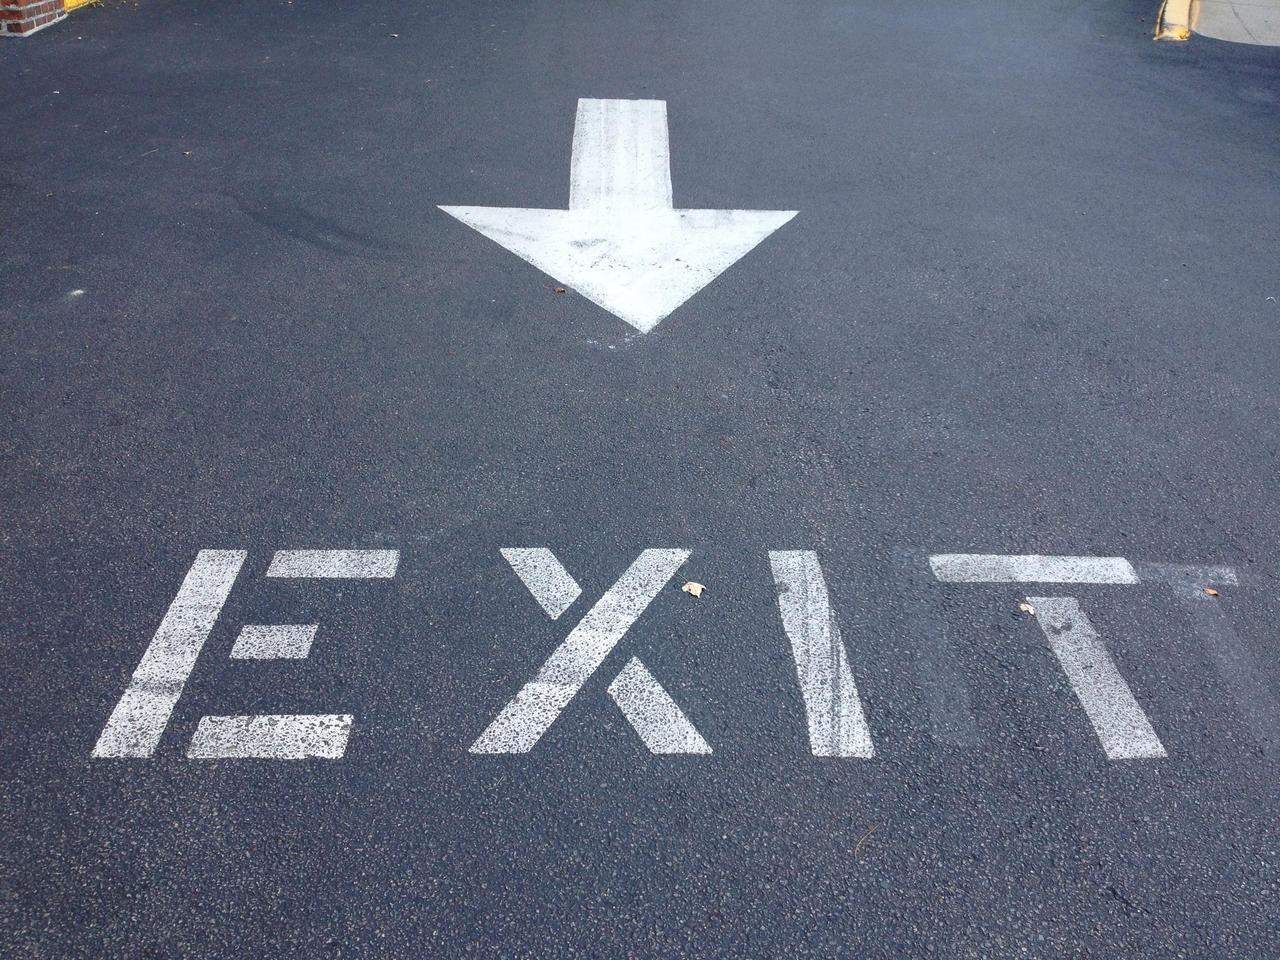 Image of Exit by G. Orcha